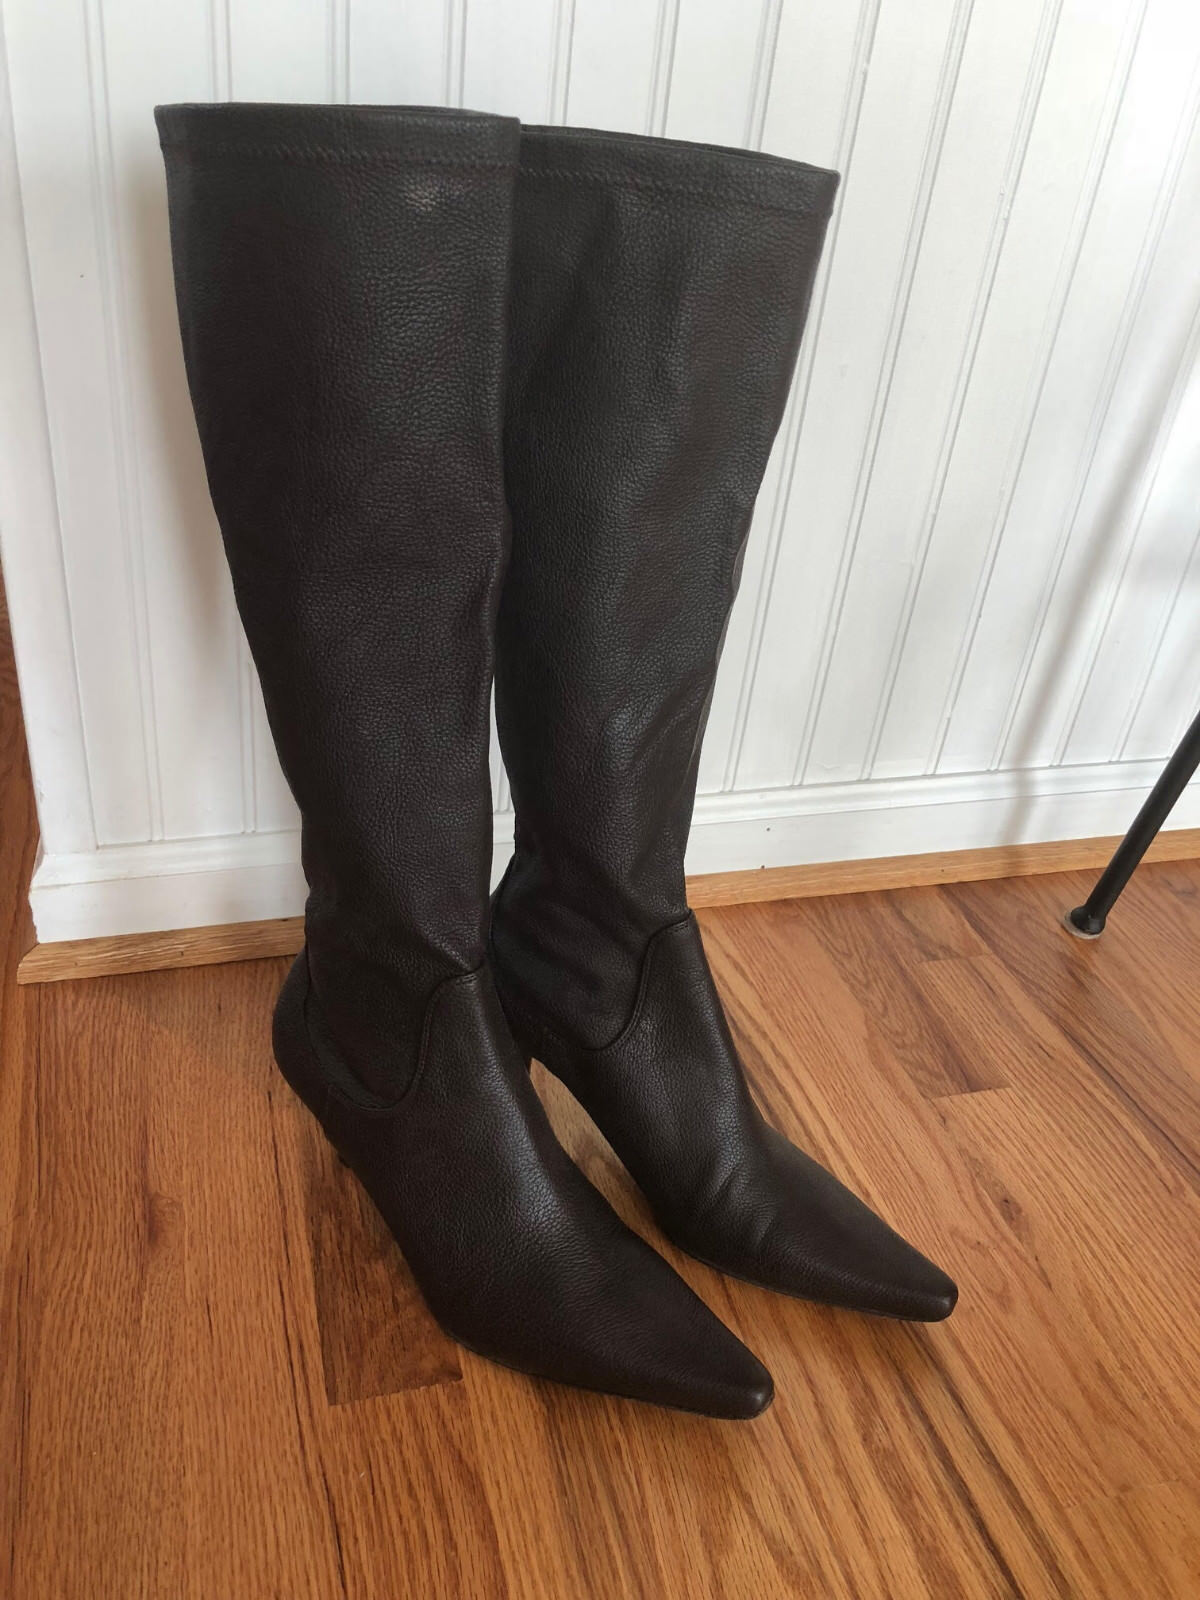 EUC Women's Donald J. Pliner Brown textured Leather Knee High Boots Size 9M